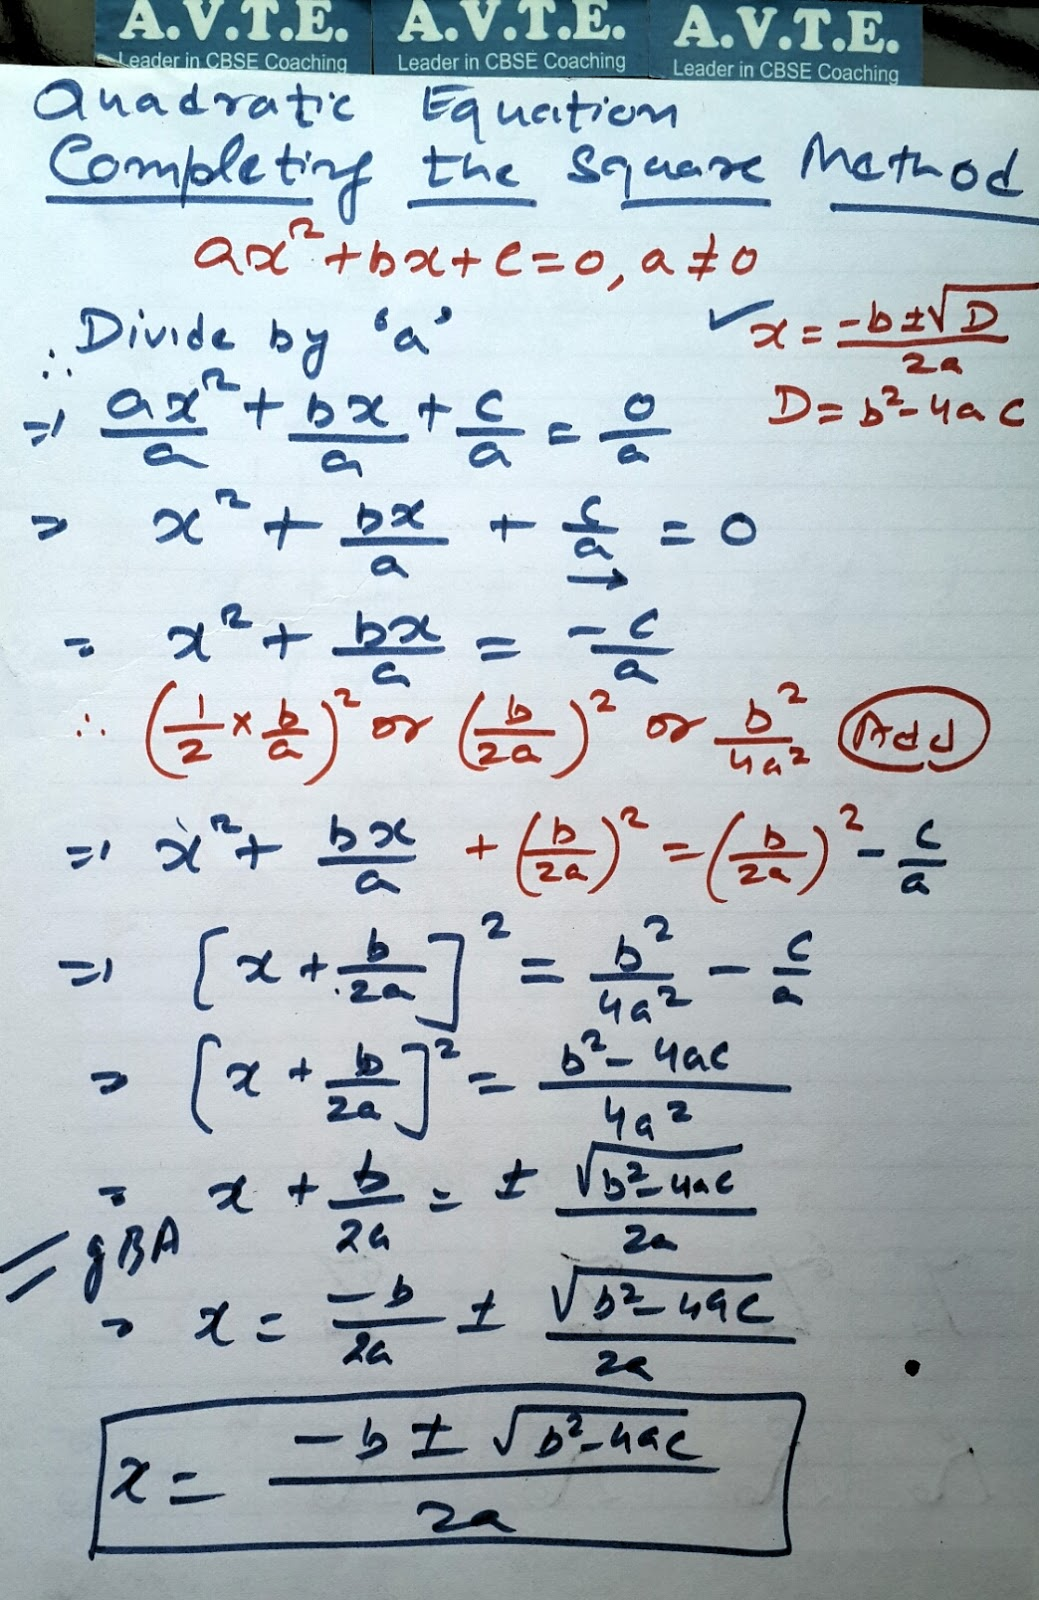 Completing The Square Method Of Quadratic Equation With